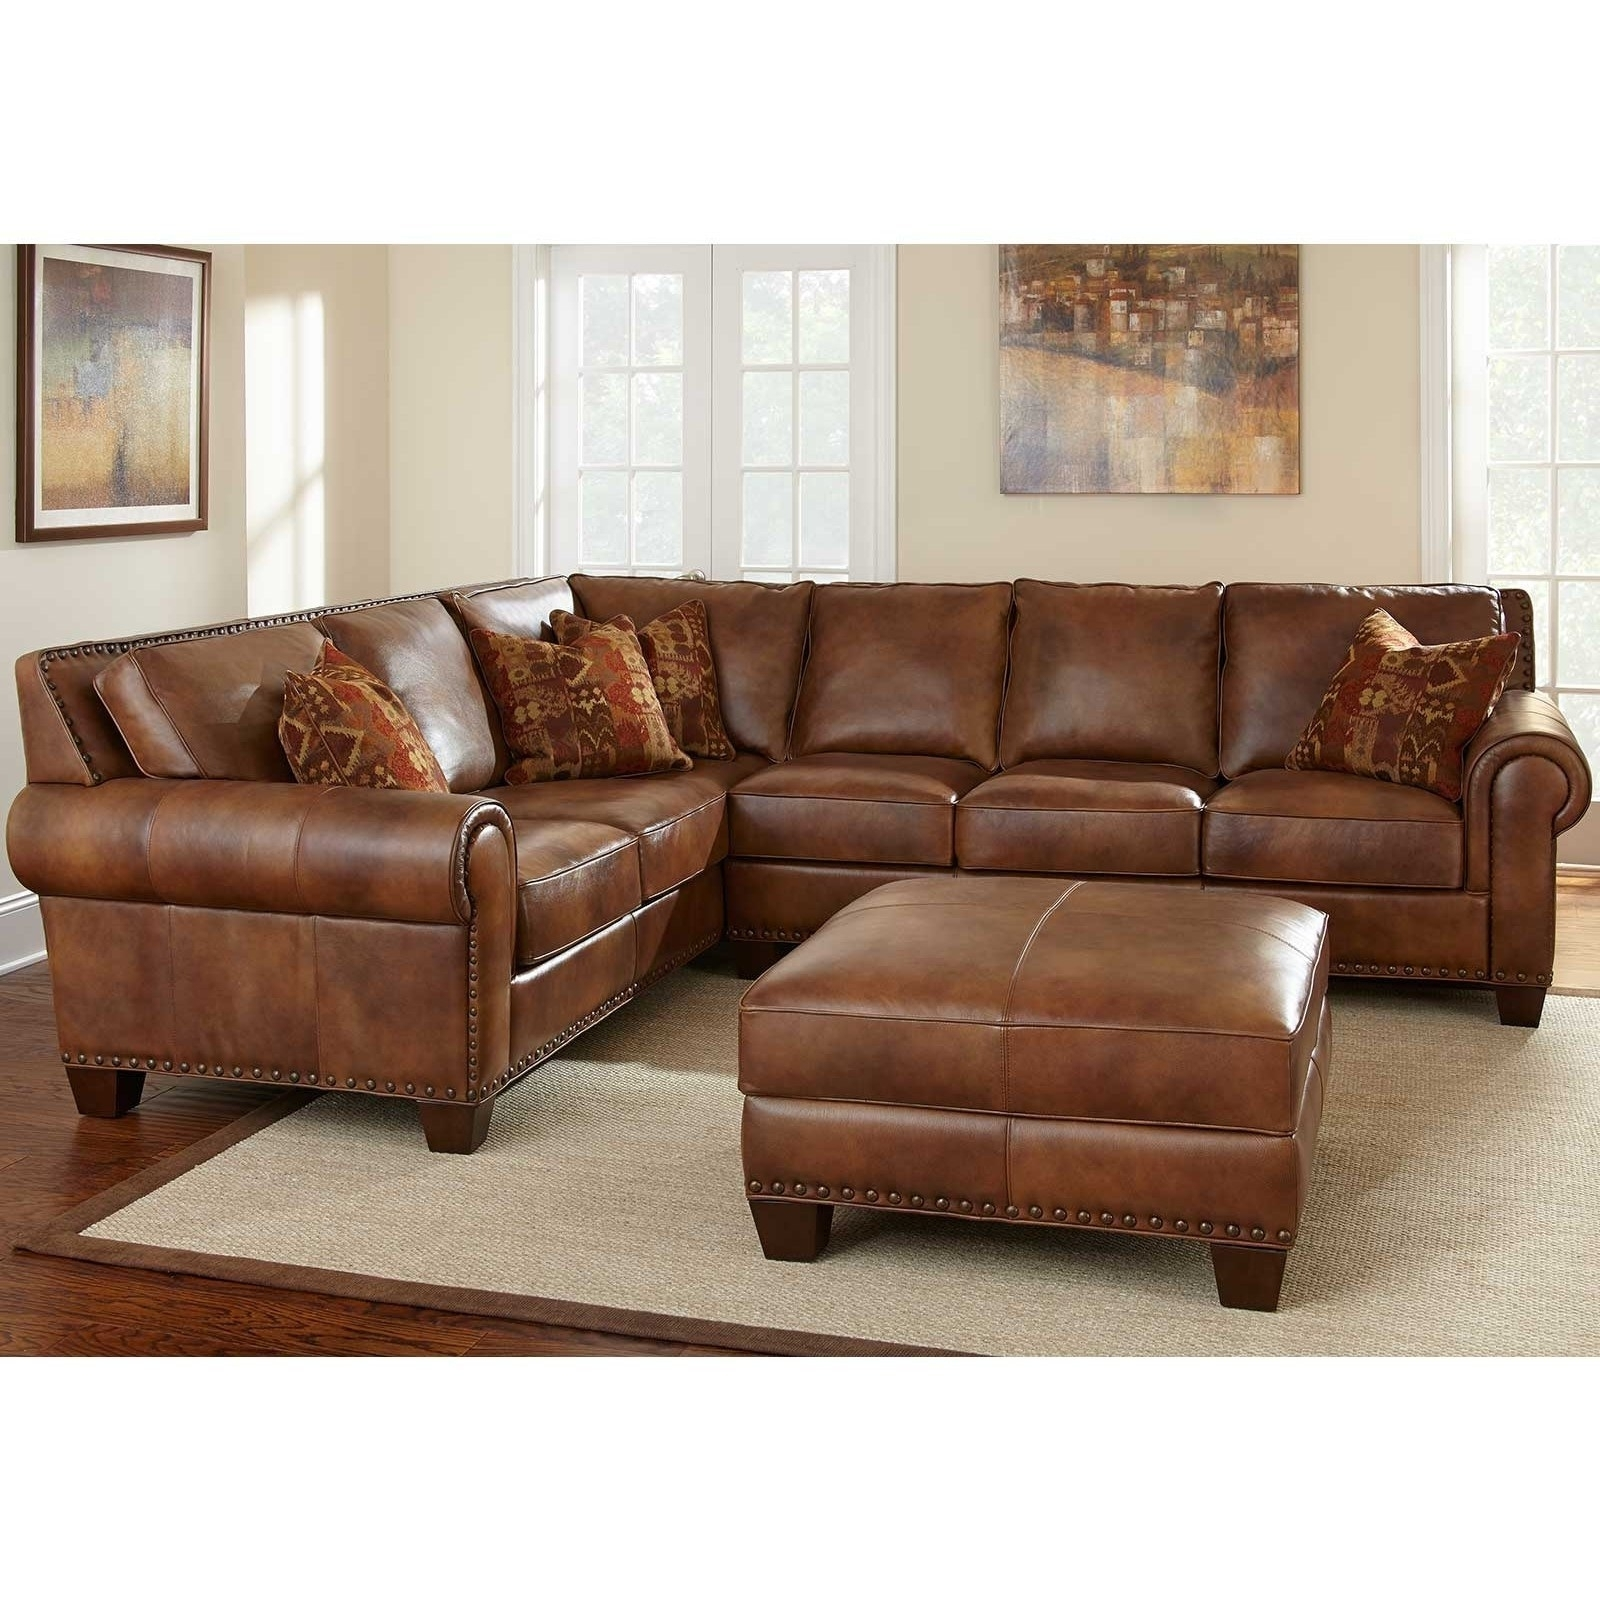 Sectional Sofa Design: Glamour Leather Sectional Sofas On Sale Within Current Sectional Sofas By Size (View 19 of 20)